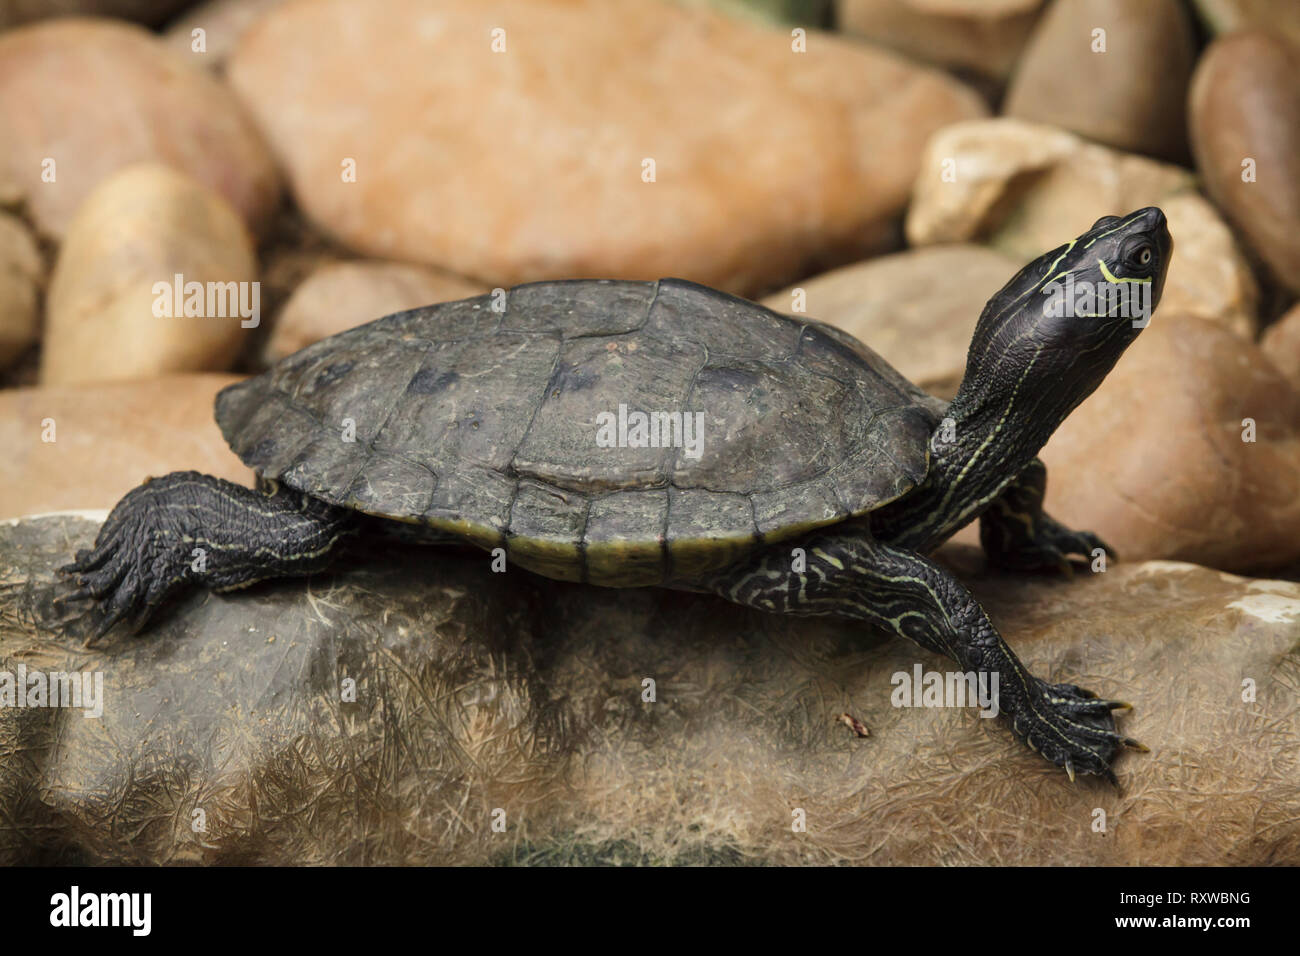 Florida red-bellied cooter (Pseudemys nelsoni), also known as the Florida redbelly turtle. Stock Photo